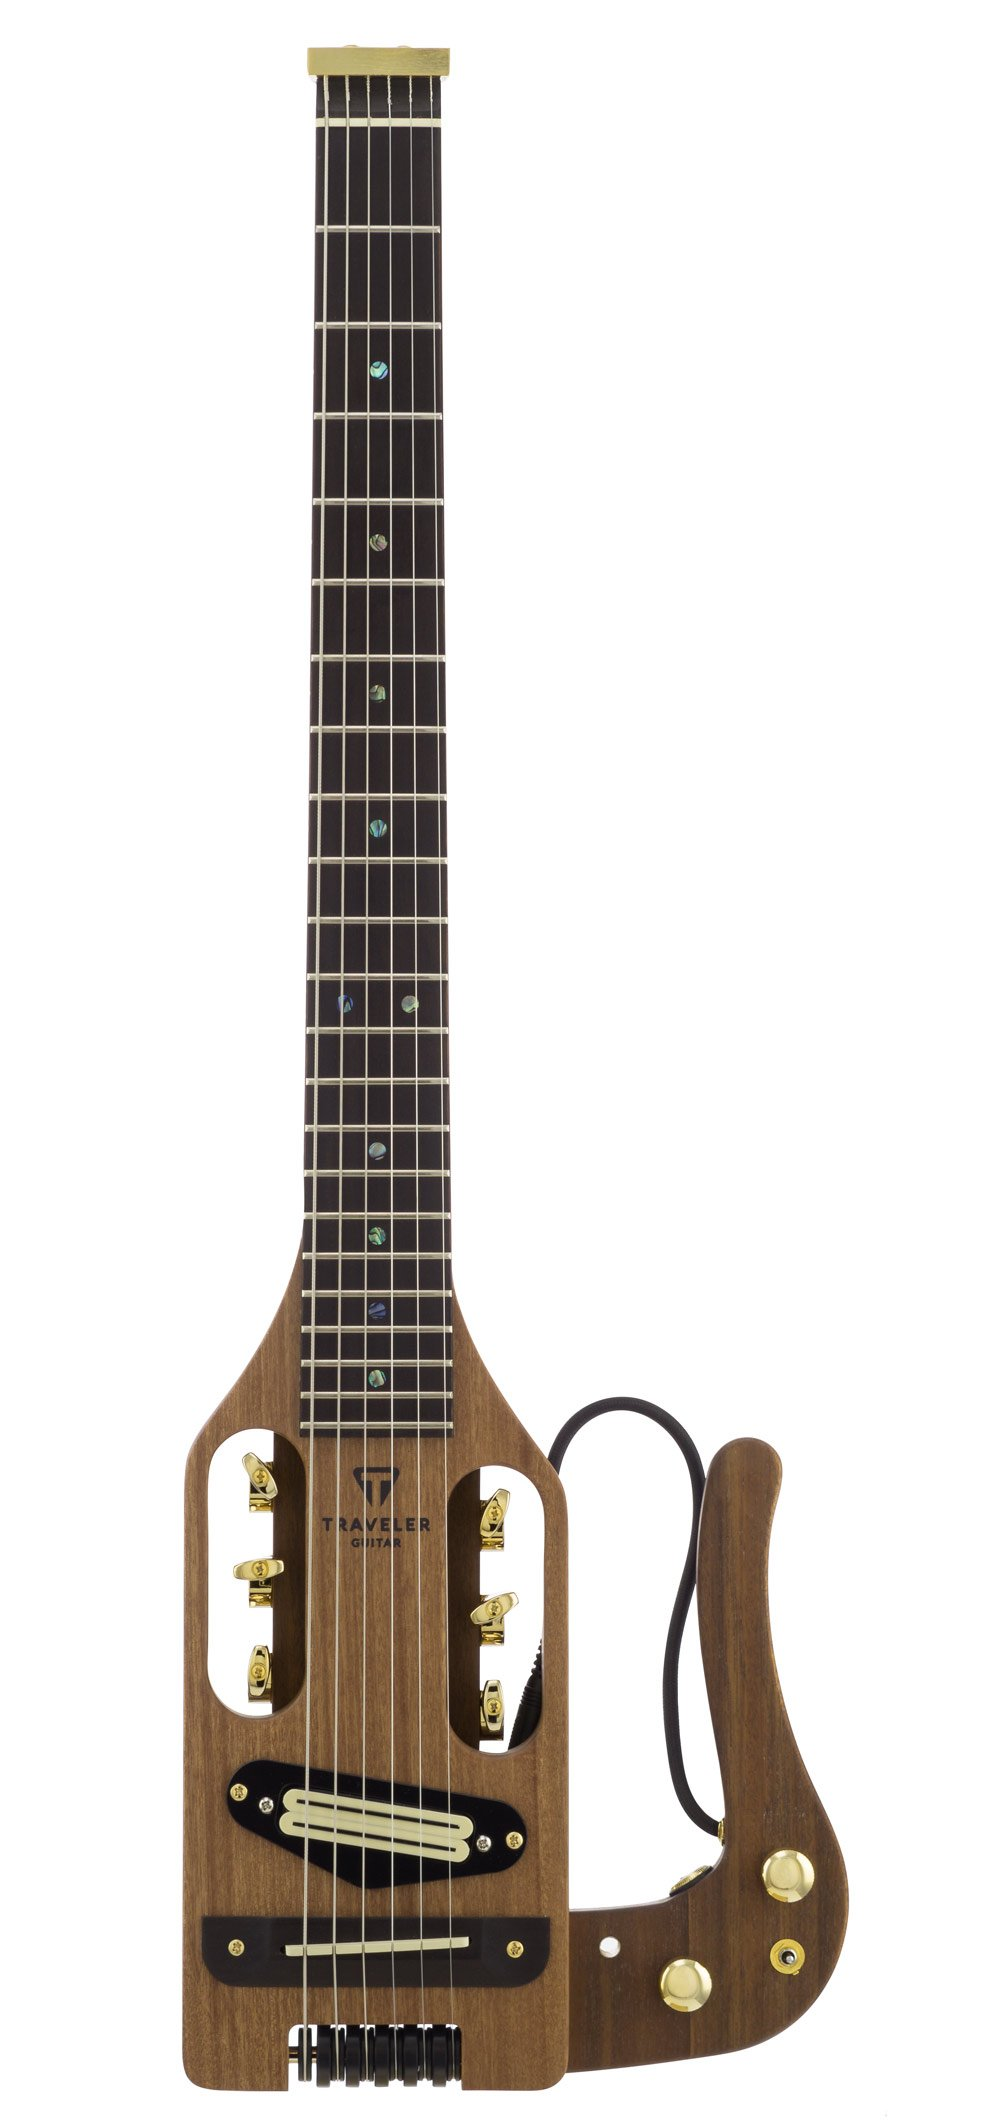 Cheap Traveler Guitar 6 String Pro-Series Deluxe (Mahogany) Hybrid Acoustic/Electric w/Gig Bag Right Natural Satin PSD MHS Black Friday & Cyber Monday 2019